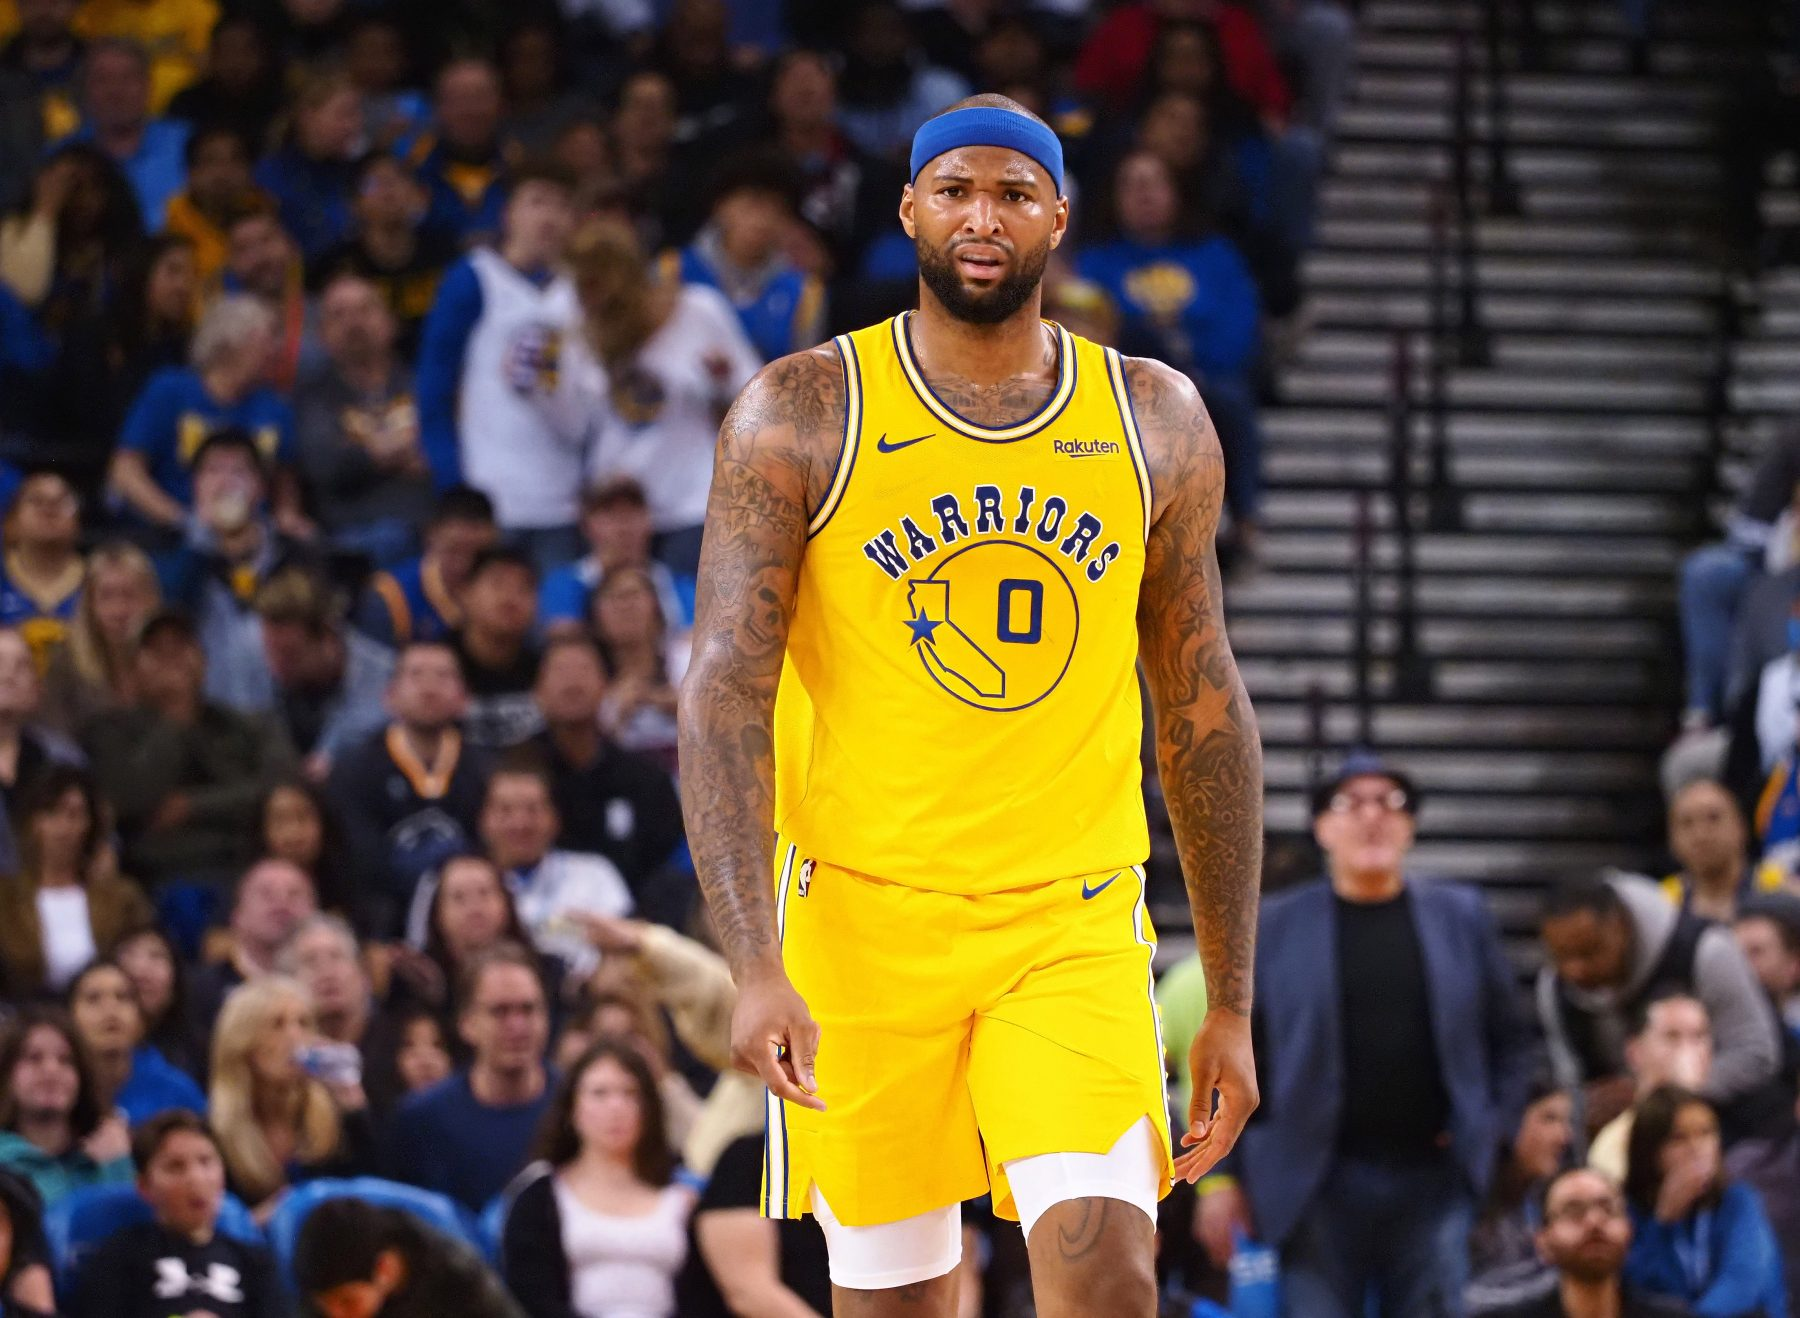 Did DeMarcus Cousins Threaten To Kill His Ex-Girlfriend Before His Wedding?